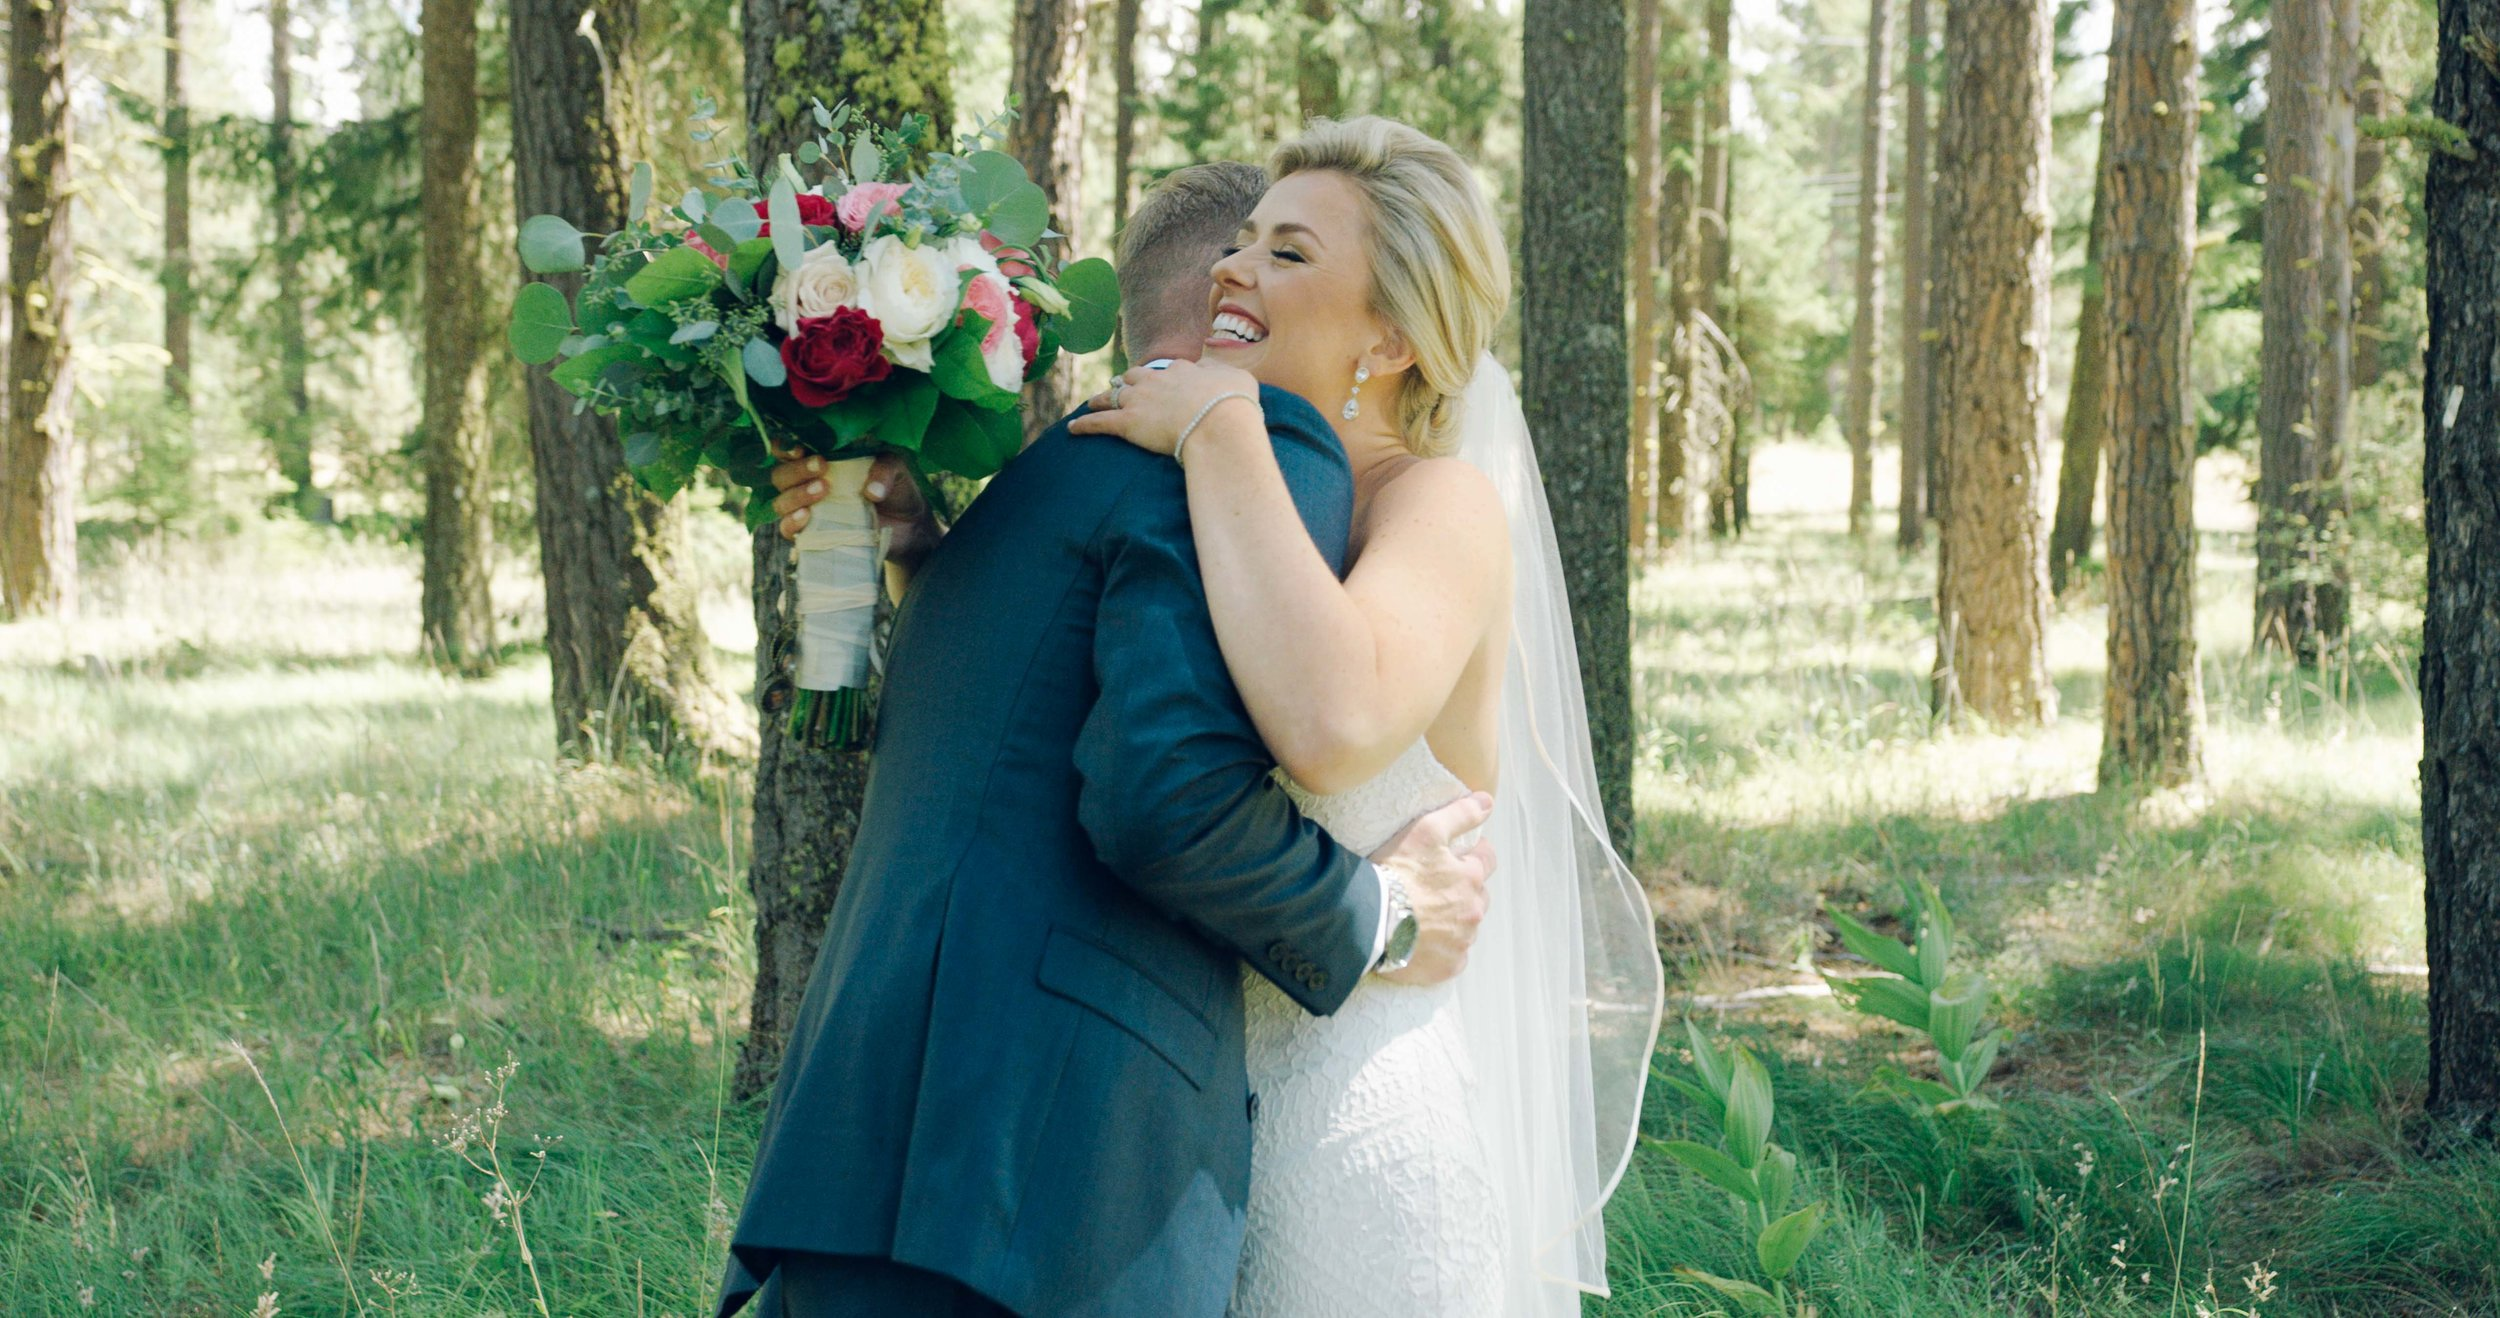 Seattle-Wedding-Videography-Photography-Newly-Films-Brooke&Nic_5.jpg